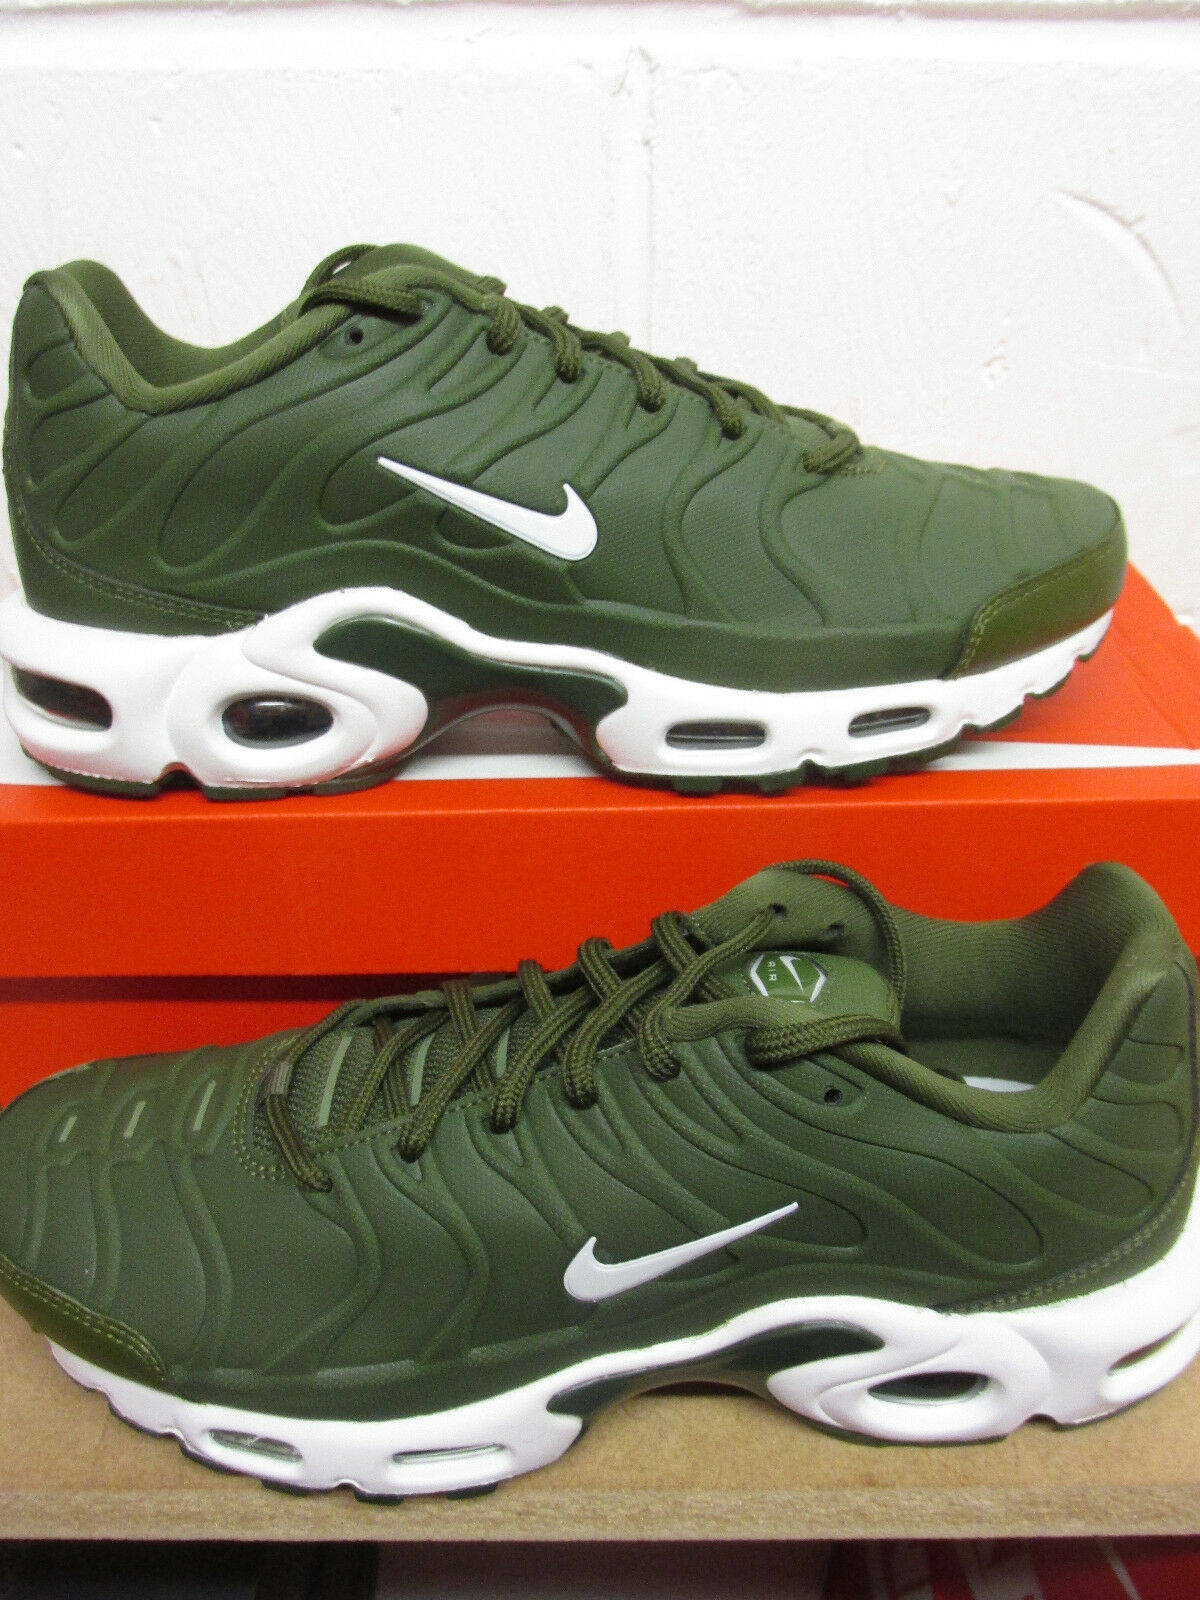 Nike Mens Air Max Plus VT Mens Nike Running Trainers 505819 300 Sneakers Schuhes 8eb87c